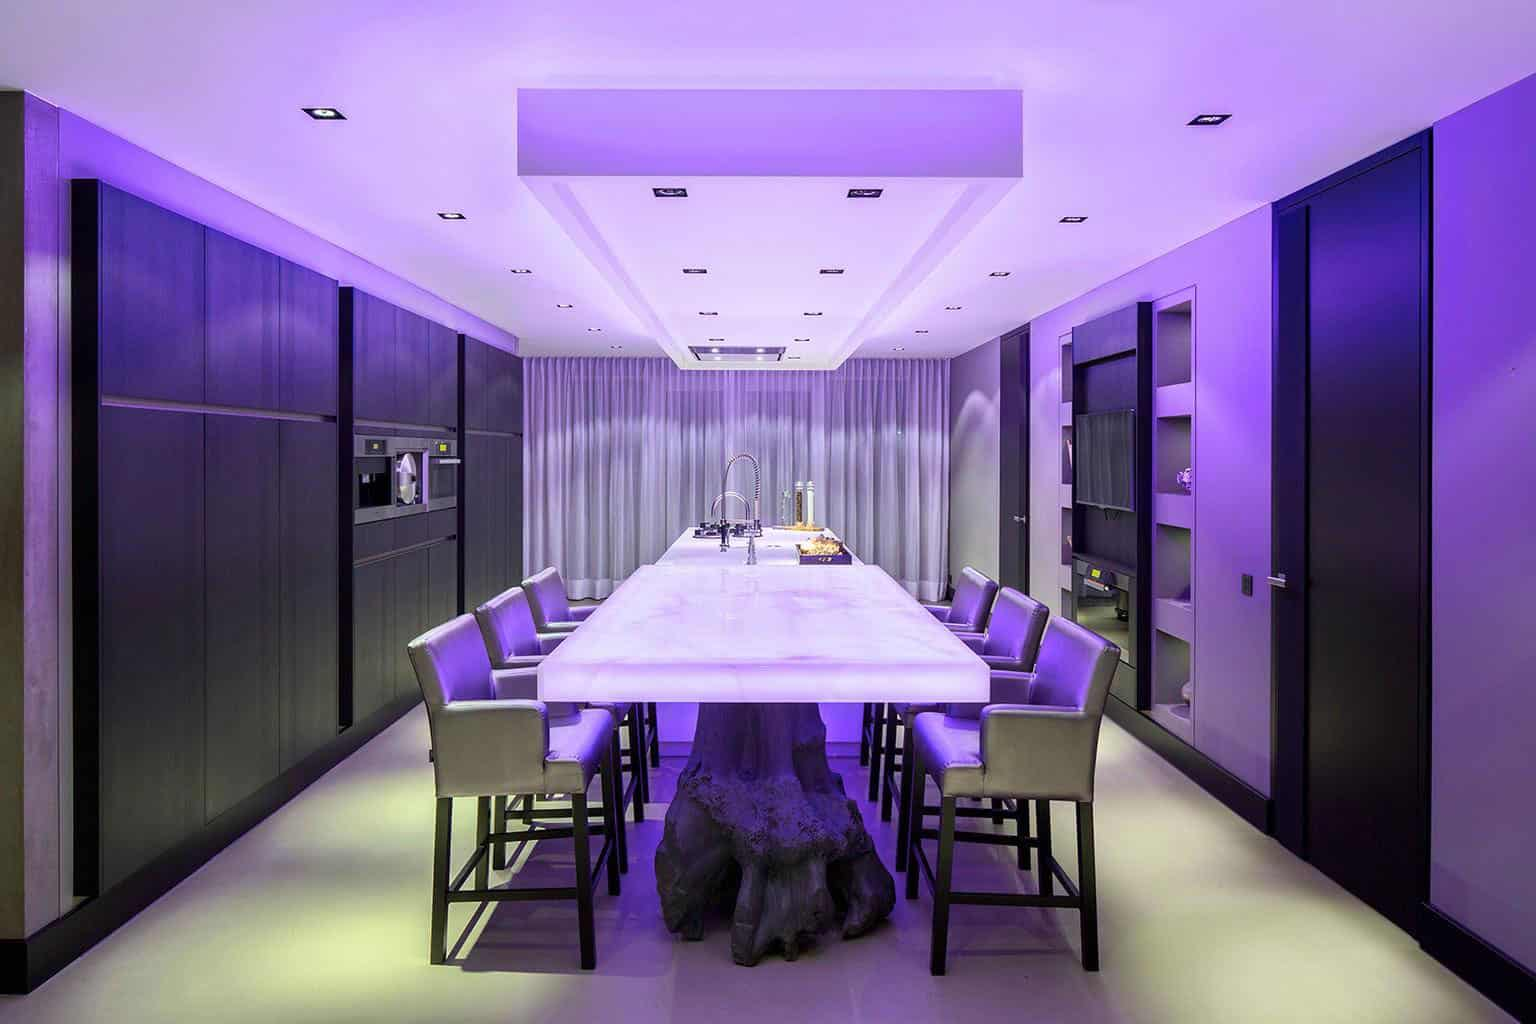 led lighting for the home. view in gallery cozyhomeinteriorecoglam5ledlights led lighting for the home